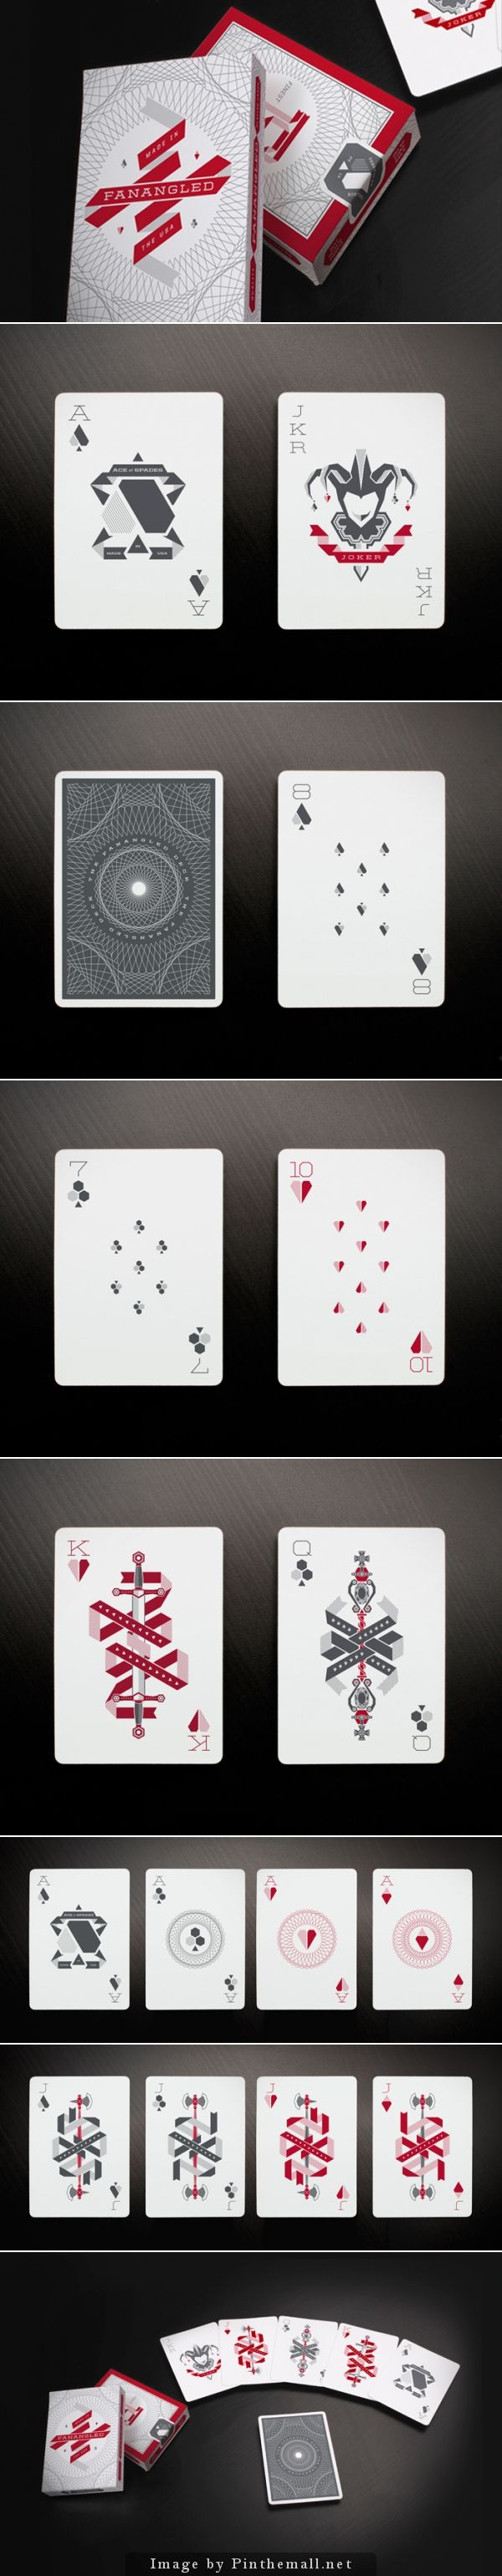 Free 3 Card Poker - Easy to Learn and Easy to Play